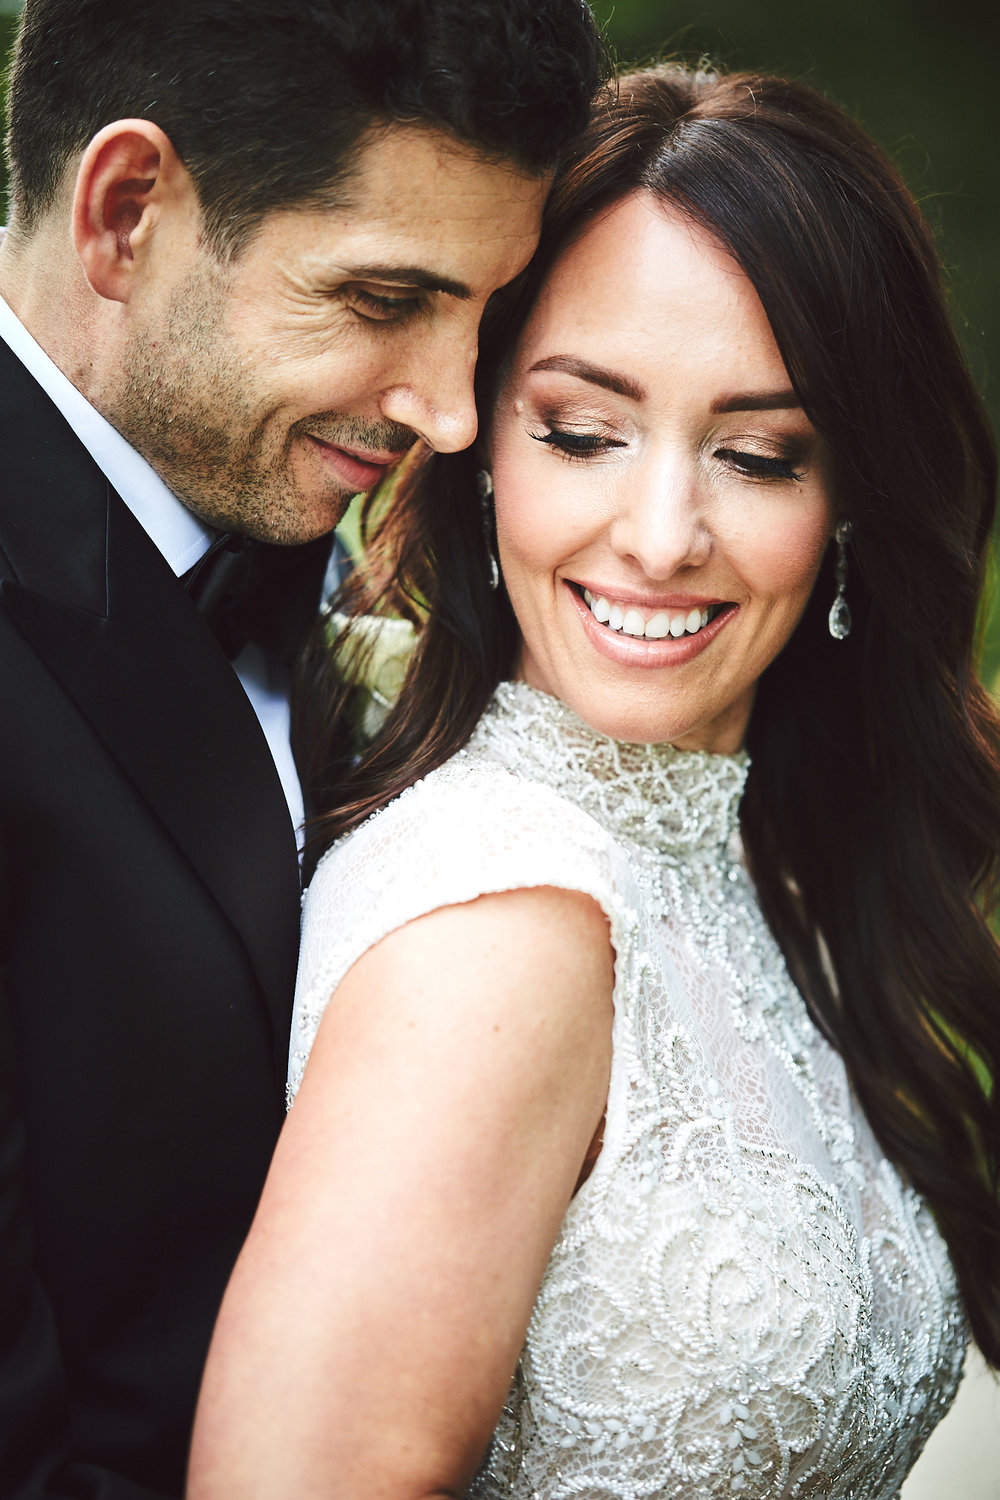 180622_BatteryGardensWeddingPhotography_NYCWeddingPhotographer_BriJohnsonWeddings_0068.jpg